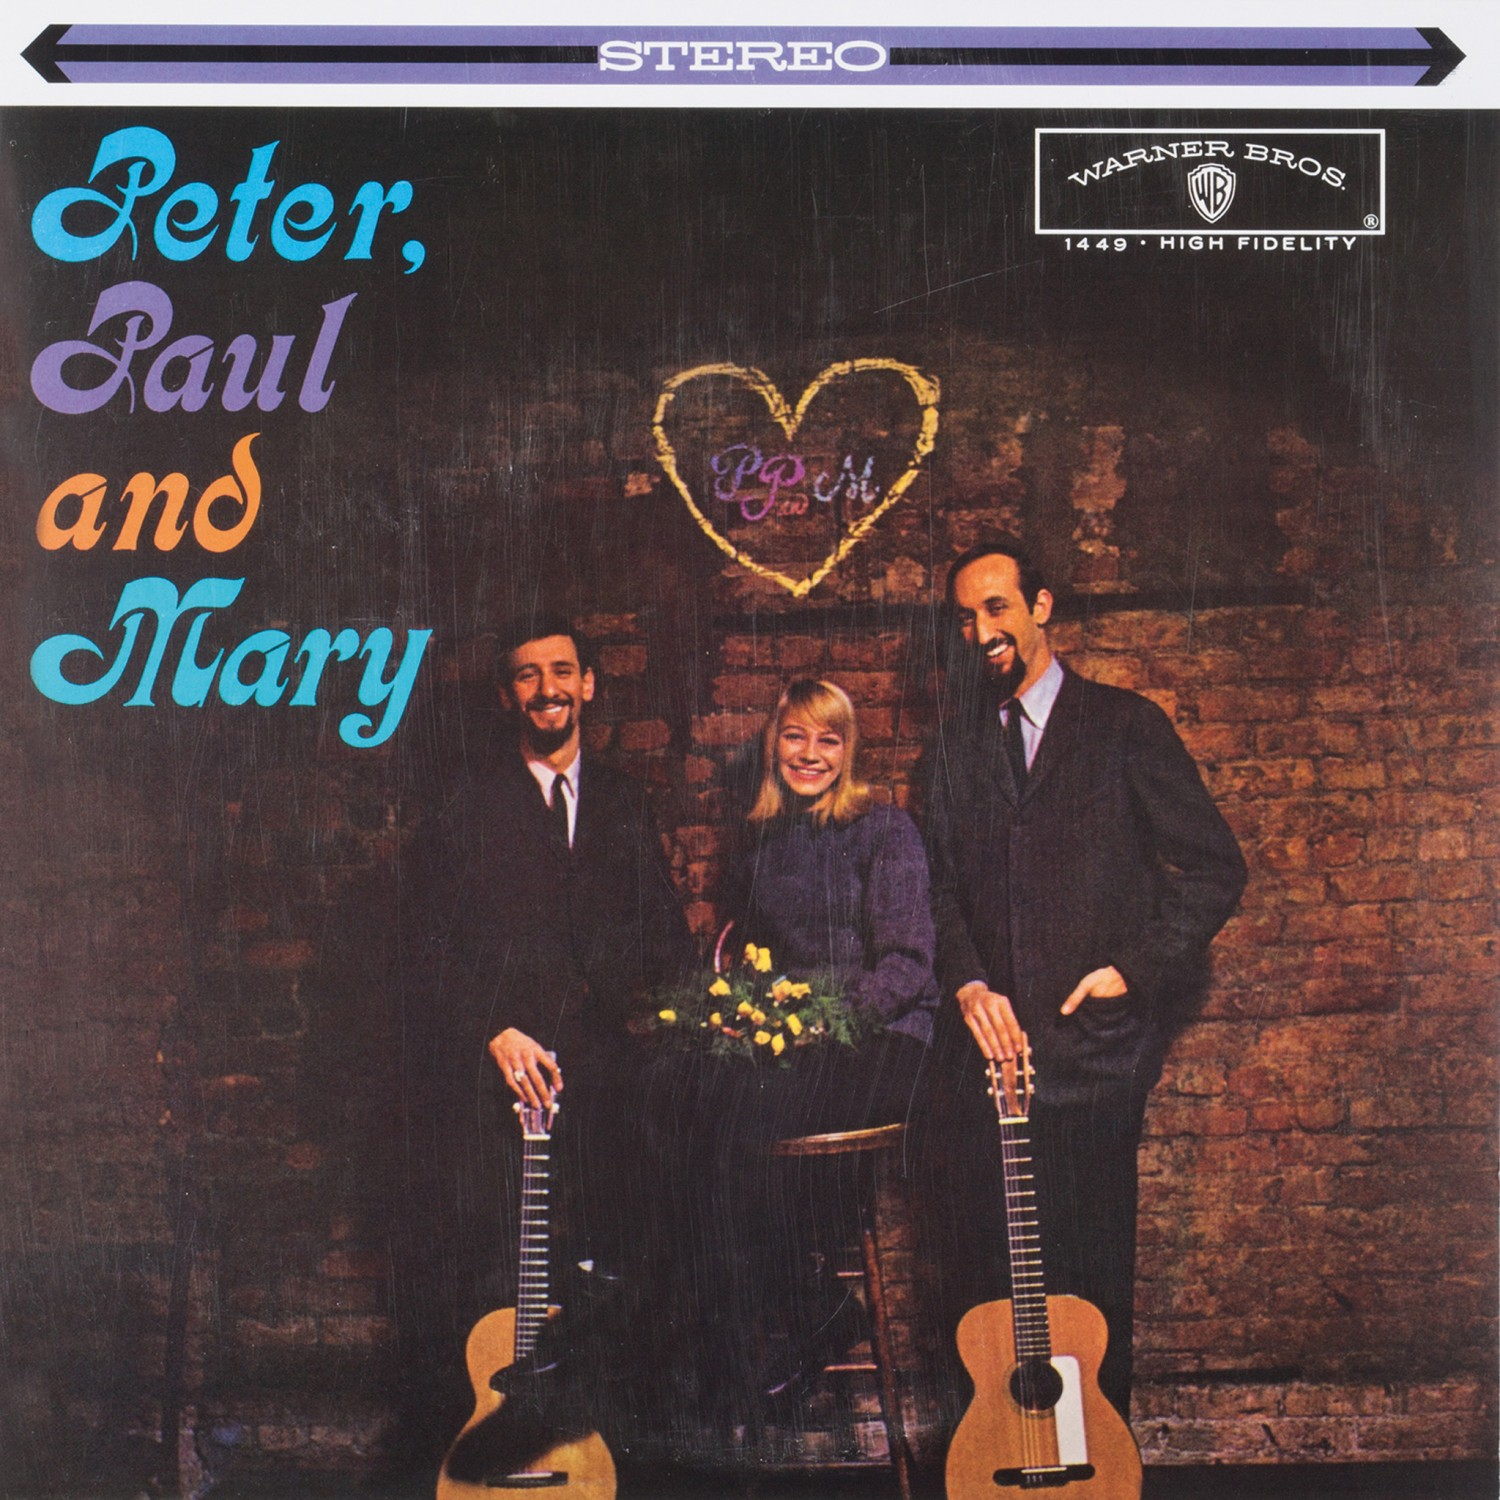 Schallplatte Peter, Paul and Mary - Peter, Paul and Mary (Original Recordings) im Test, Bild 1